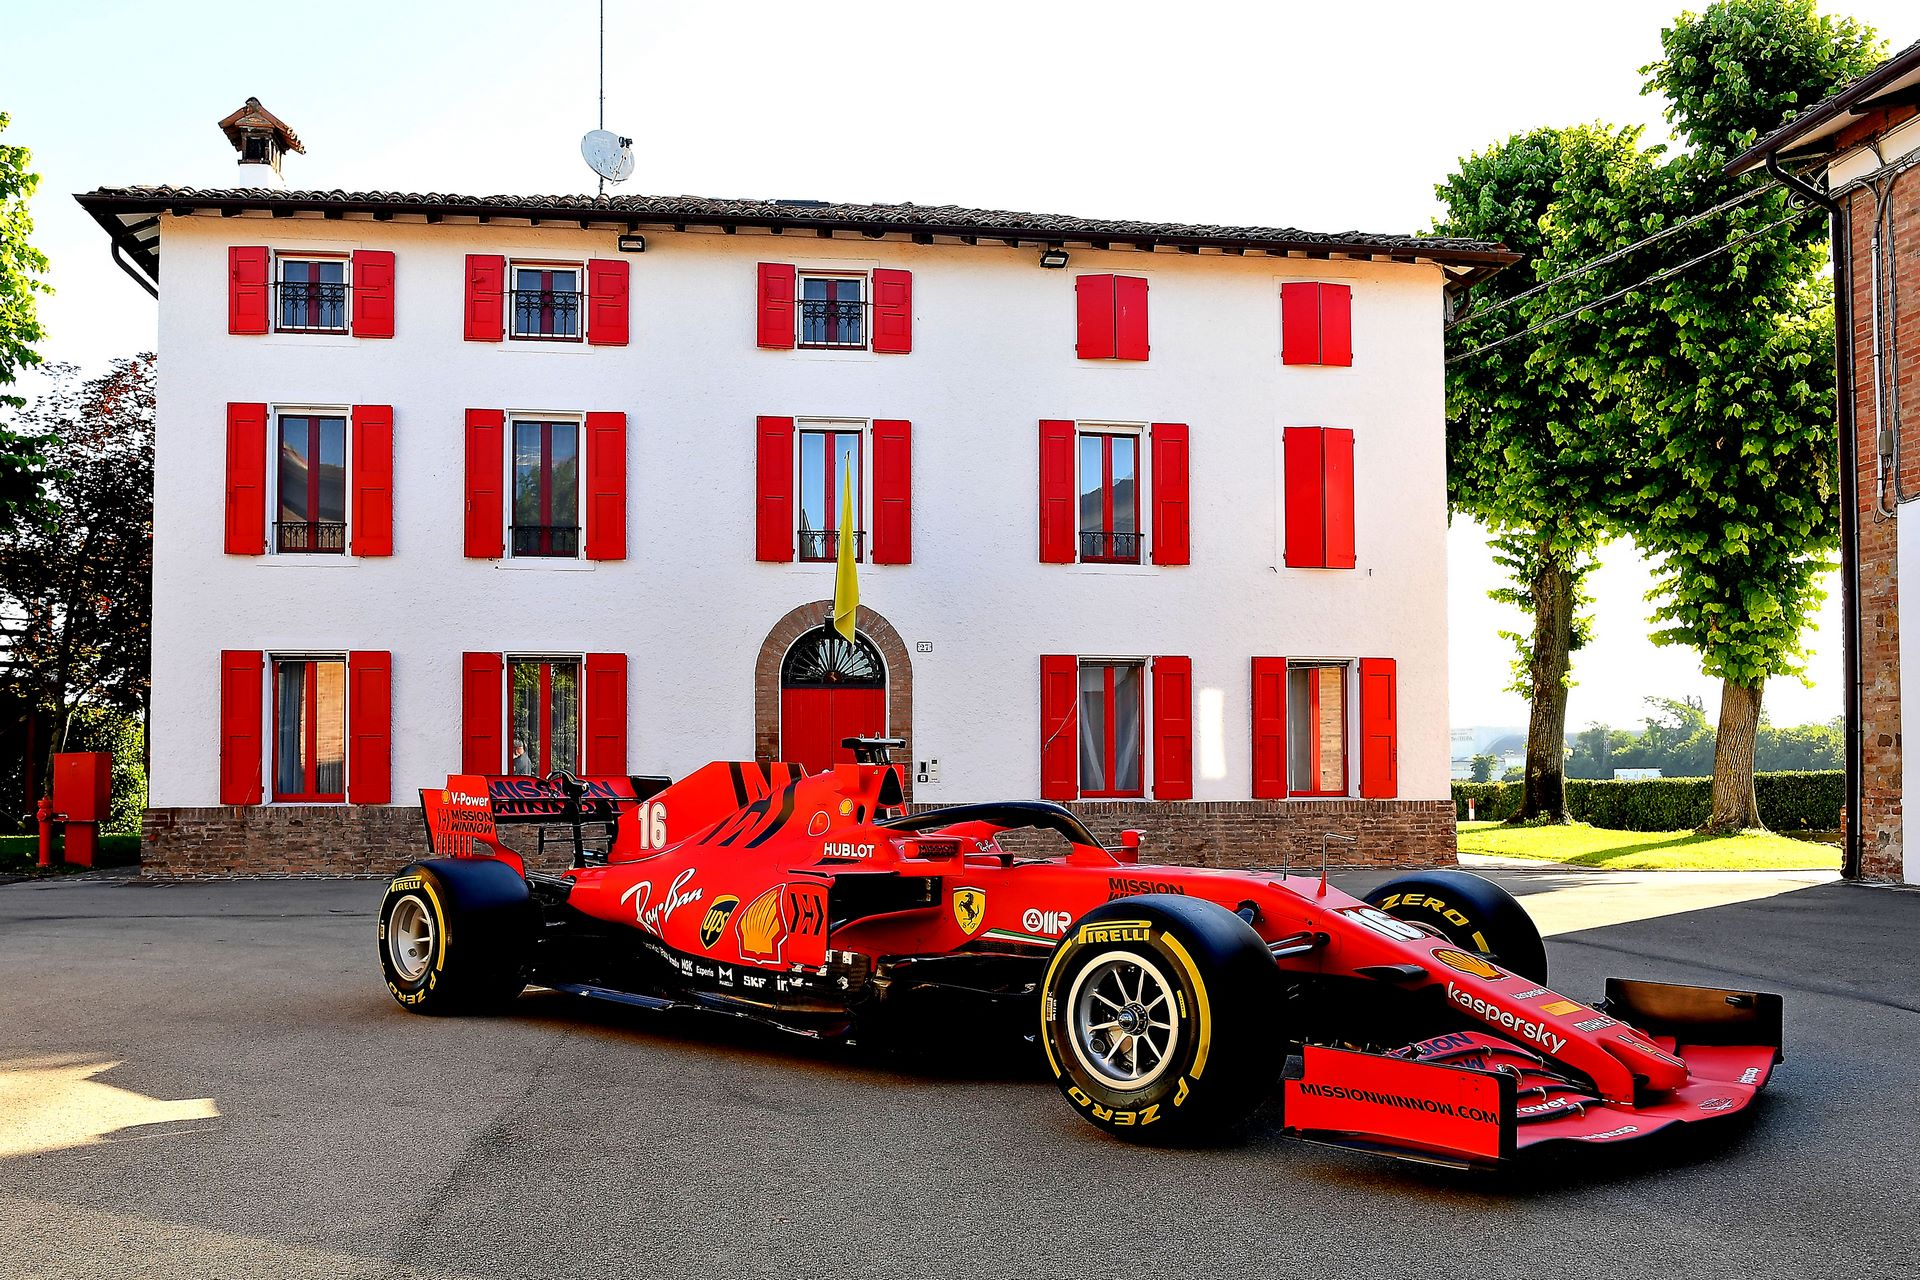 MARANELLO 18/06/2020 - STREET DEMO SF1000 / CHARLES LECLERC credit: © Scuderia Ferrari Press Office